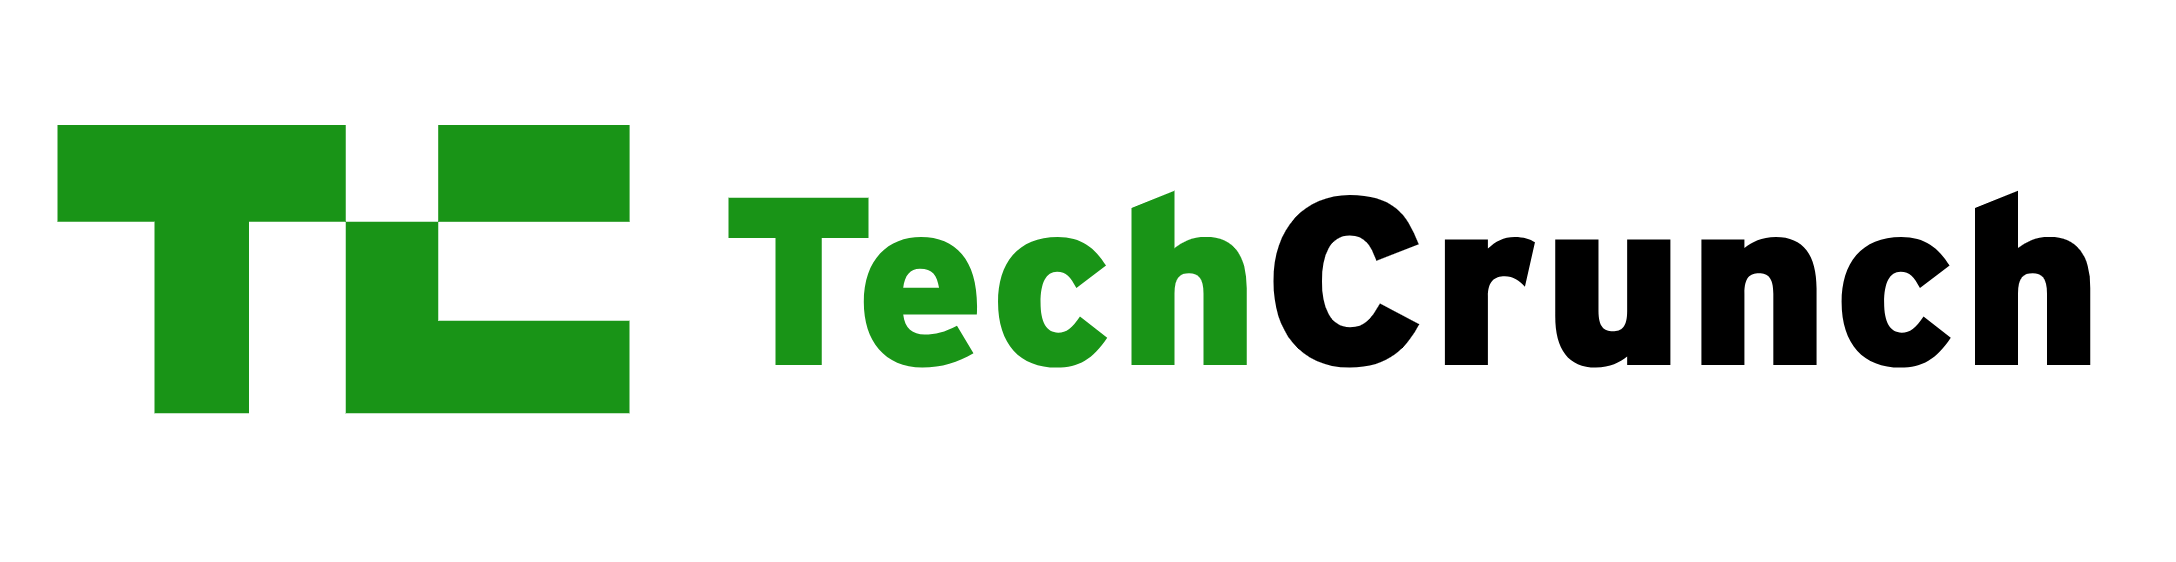 techcrunch-website logo